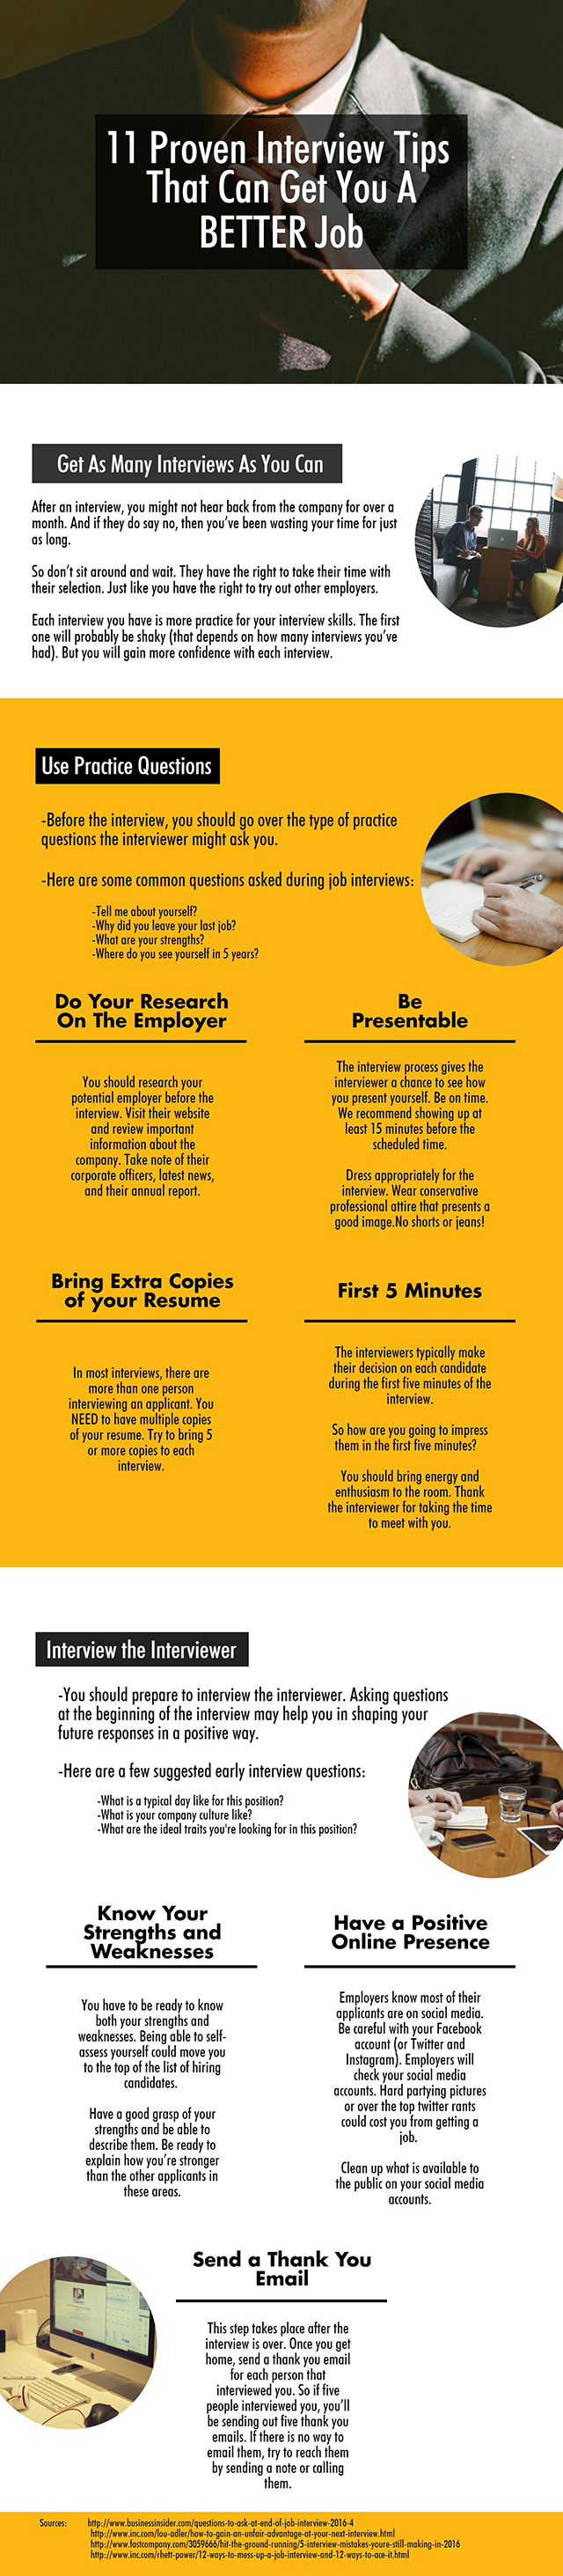 11 Proven Interview Tips - Infographic